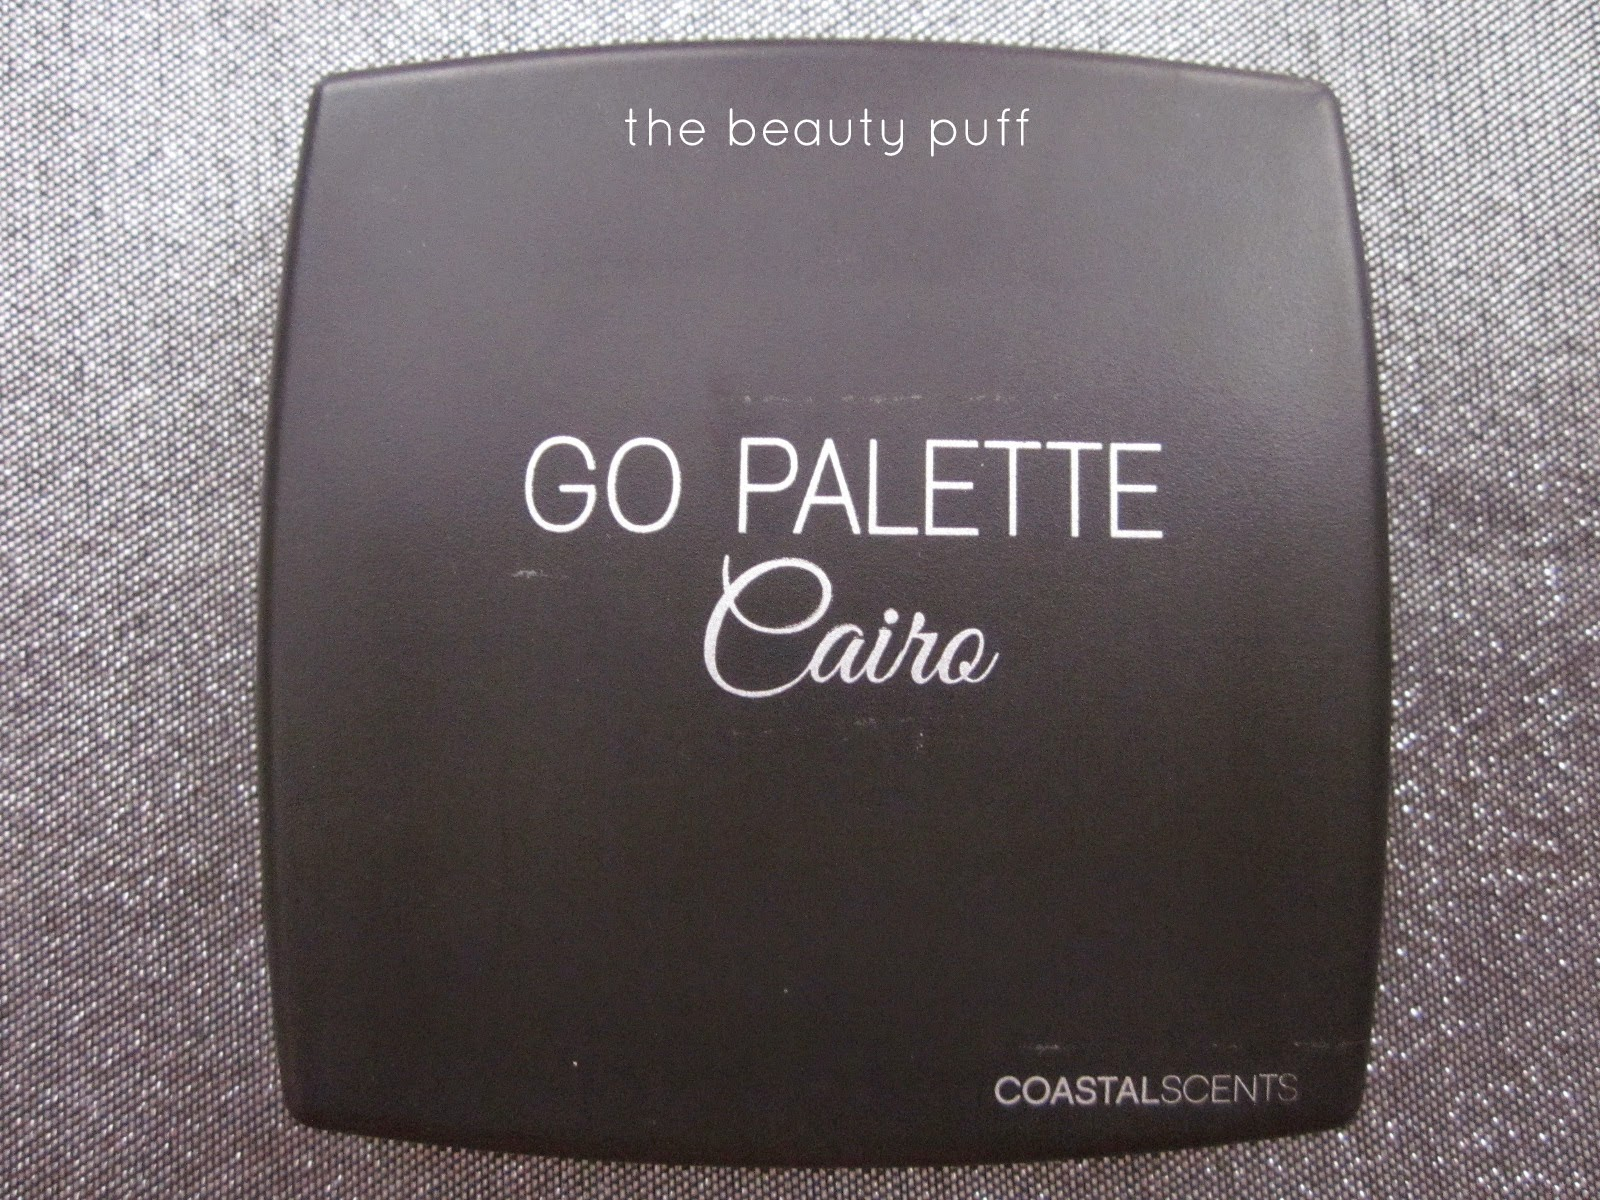 coastal scents cairo palette- the beauty puff